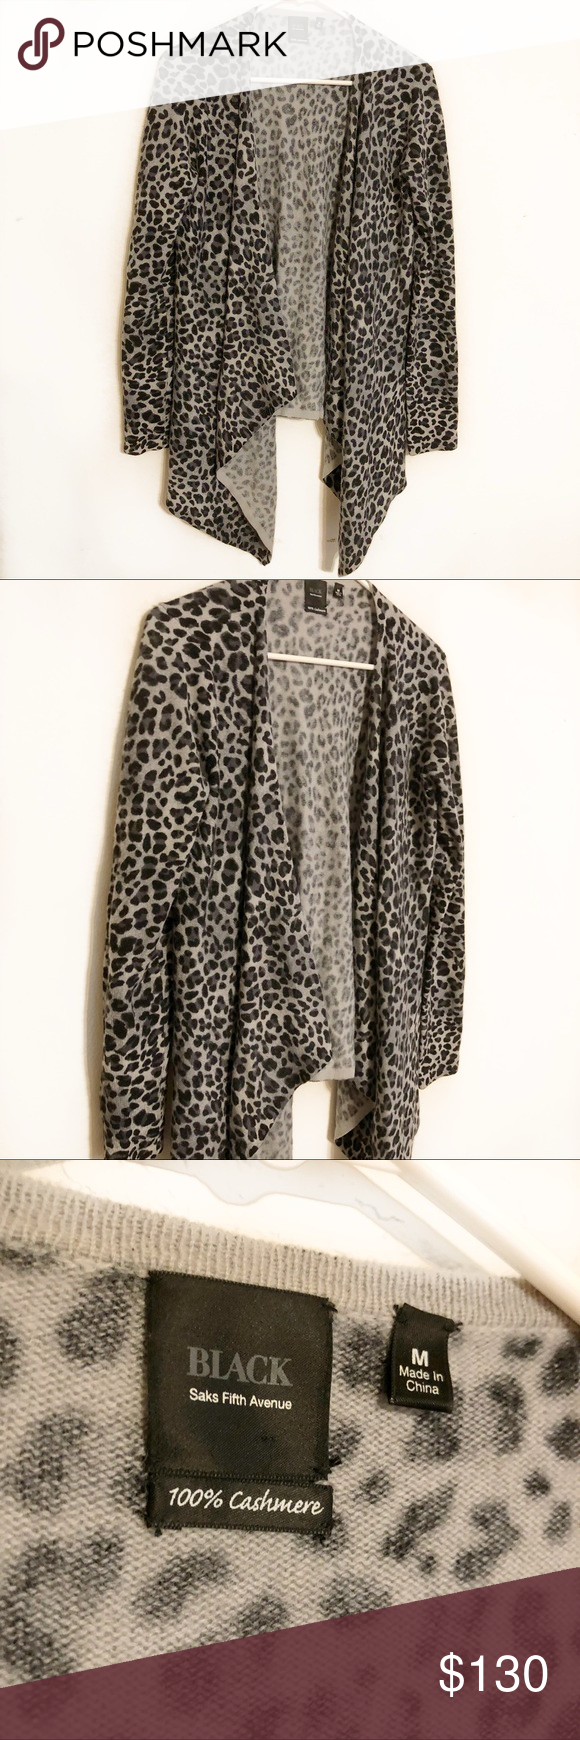 Saks Fifth Avenue Black Label Cashmere Cardigan Medium Cascading Open And Grey Cheetah